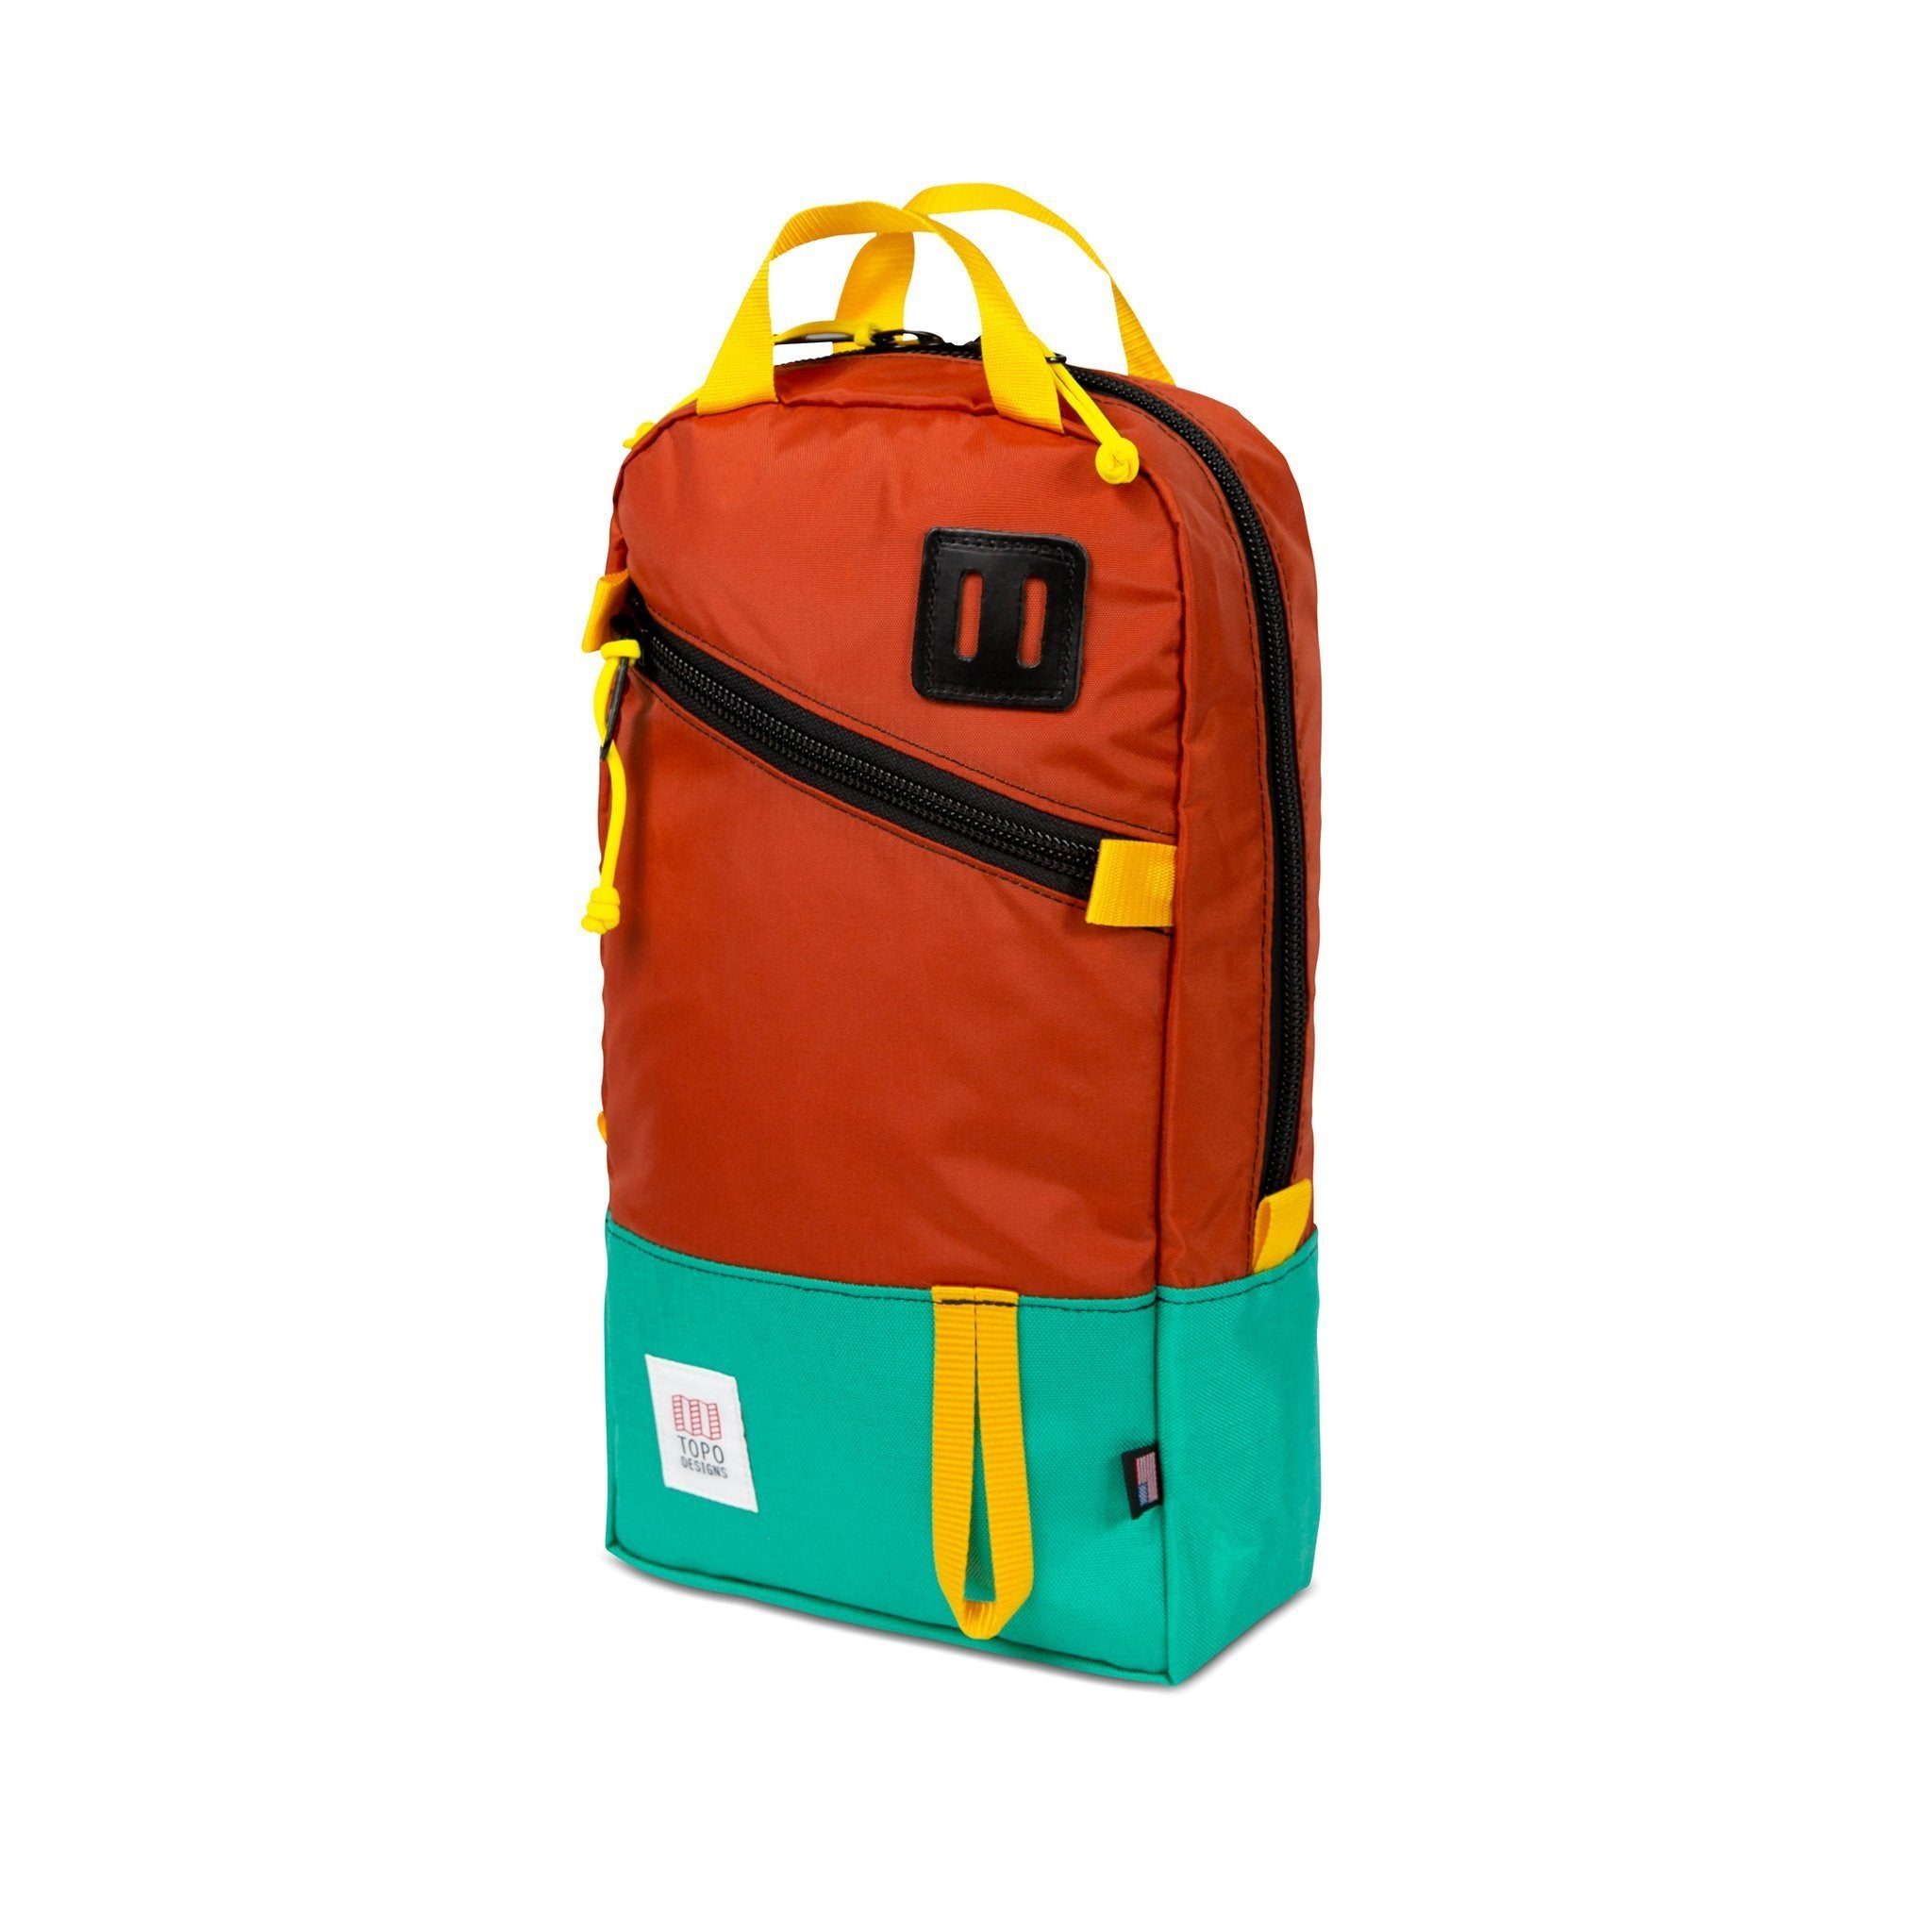 Trip Pack Topo Topo Mint / Clay